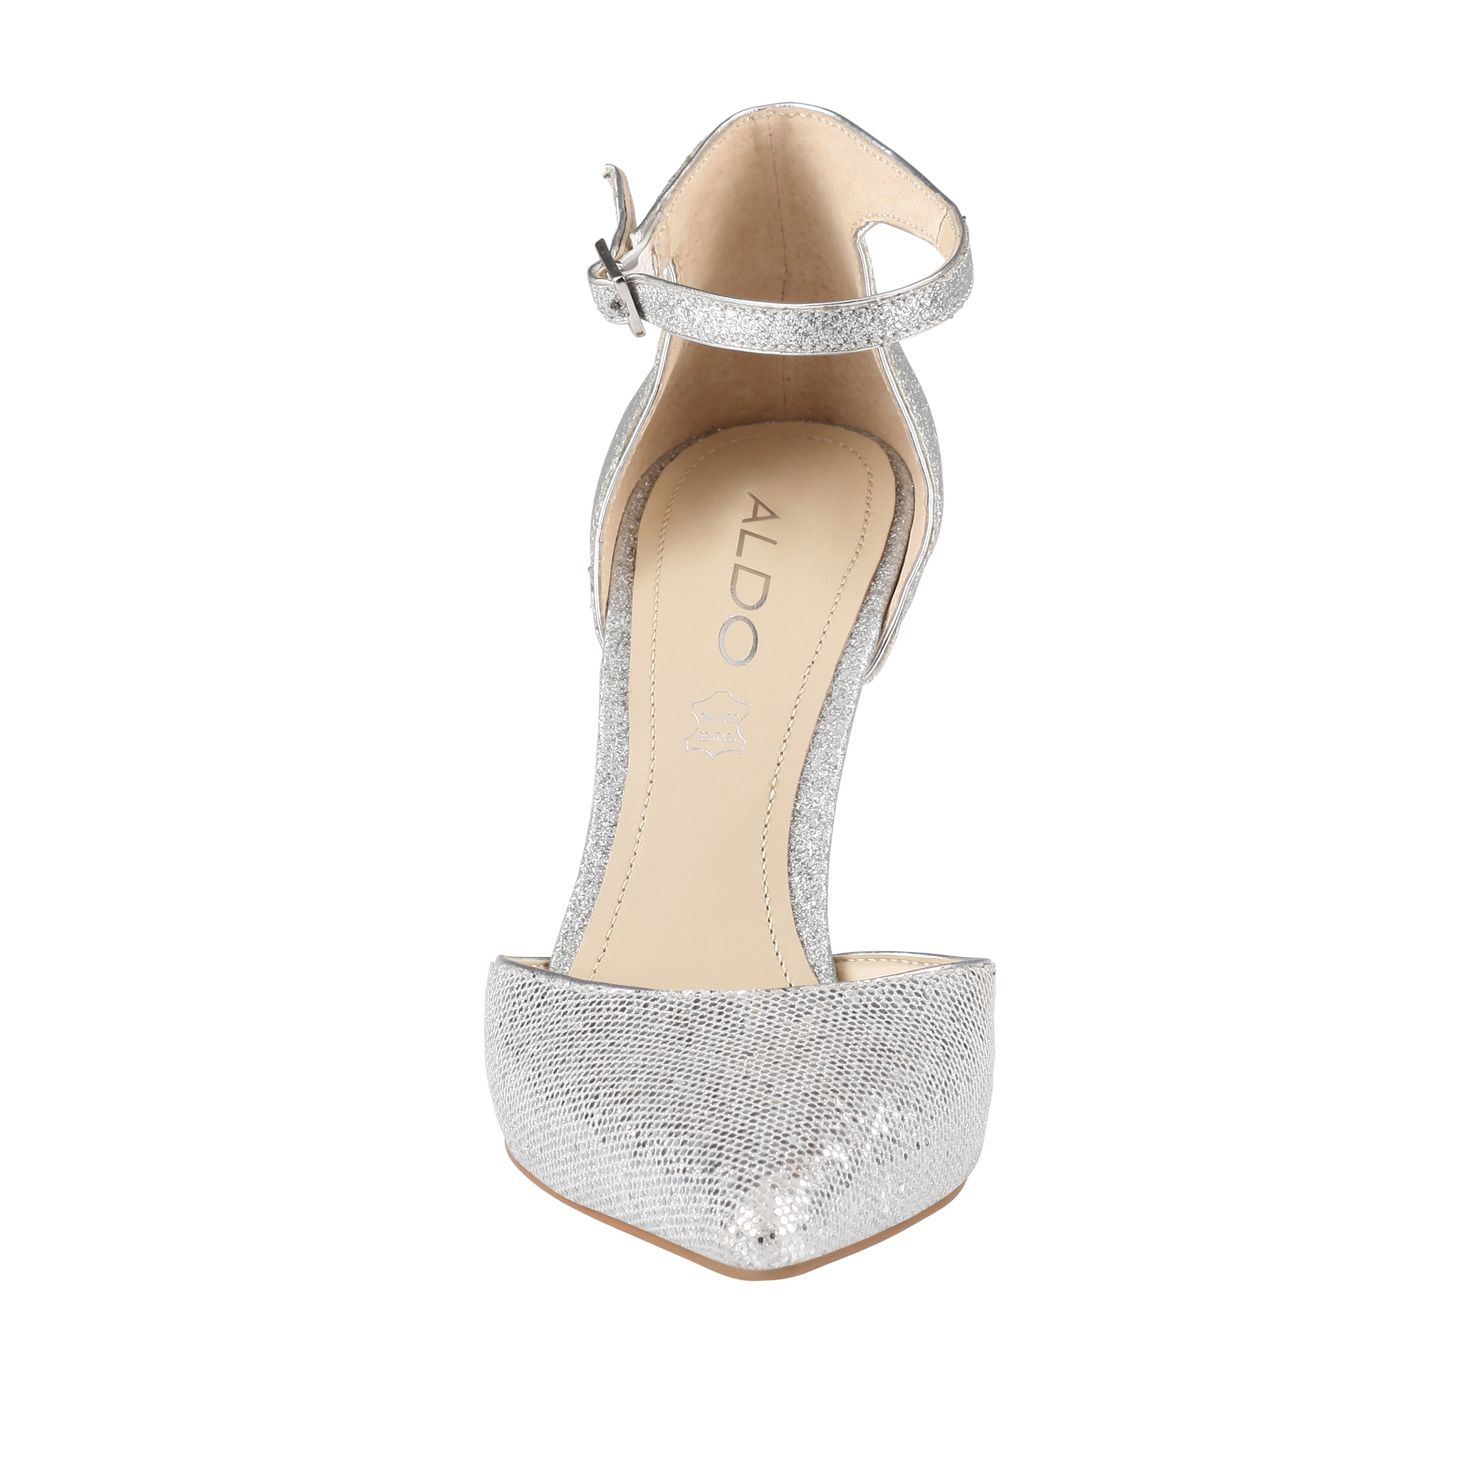 Anklam pointed toe stilleto court shoes